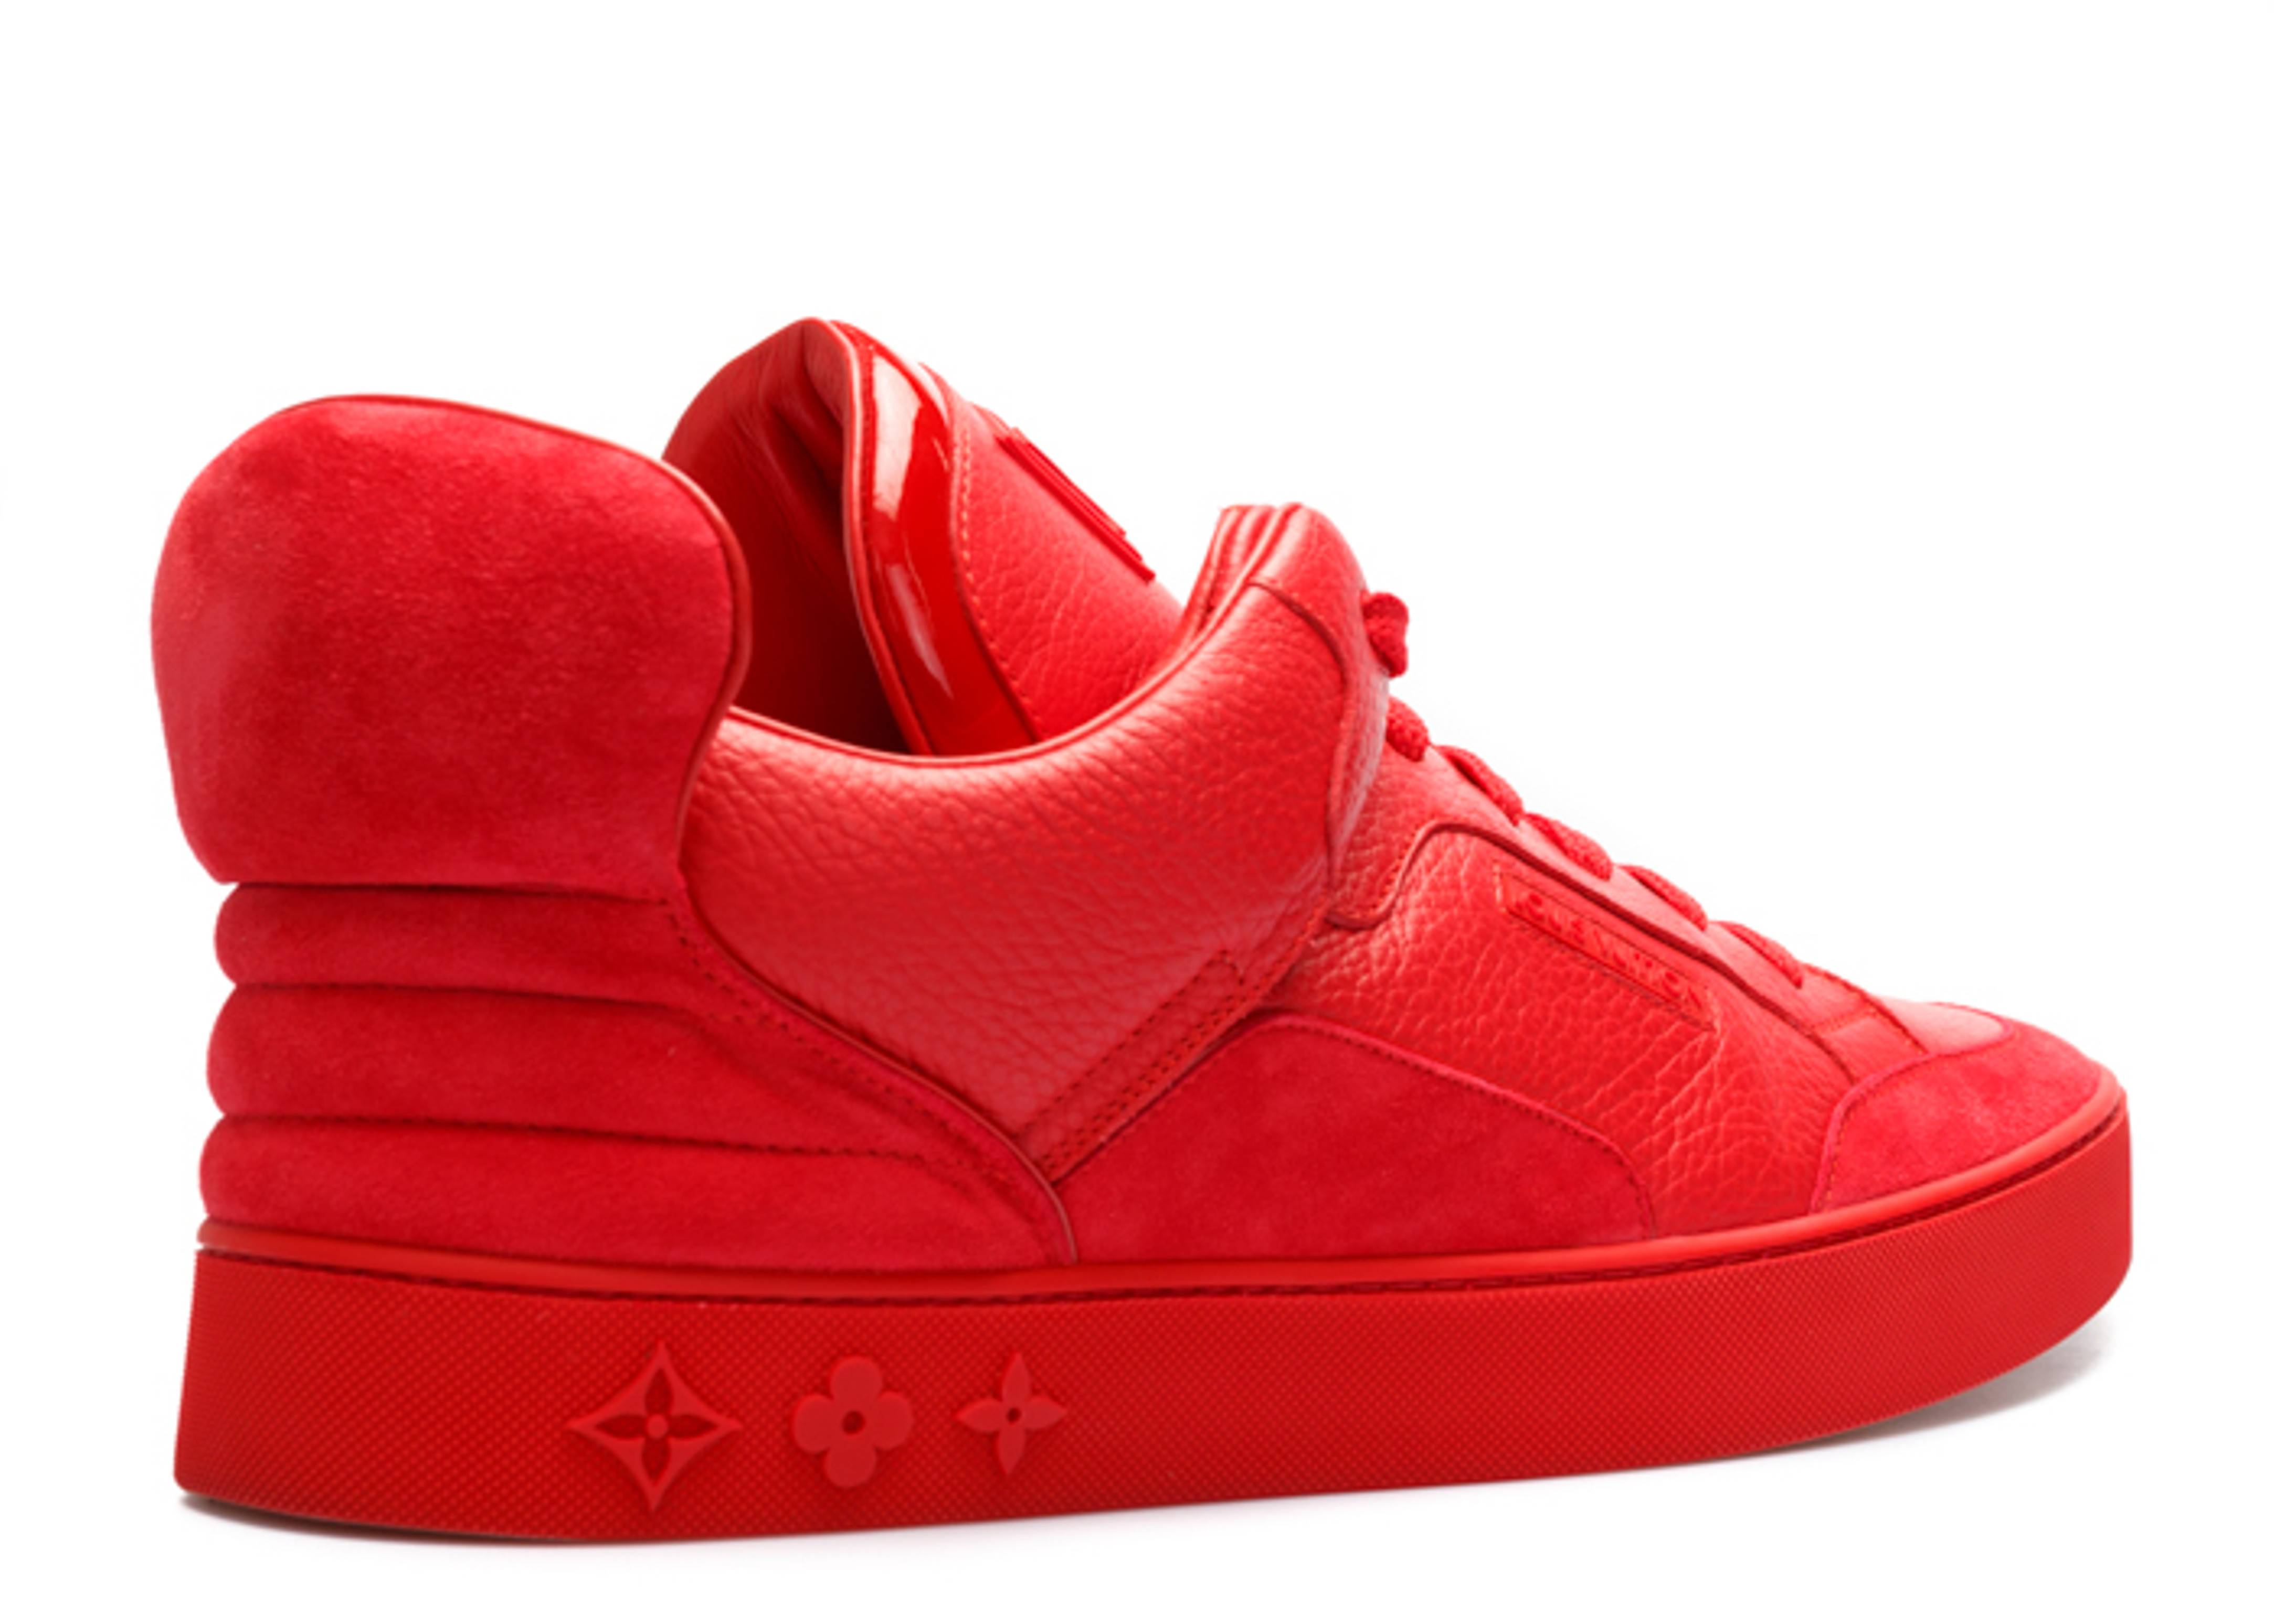 2b21dfecea239 red kanye west shoes